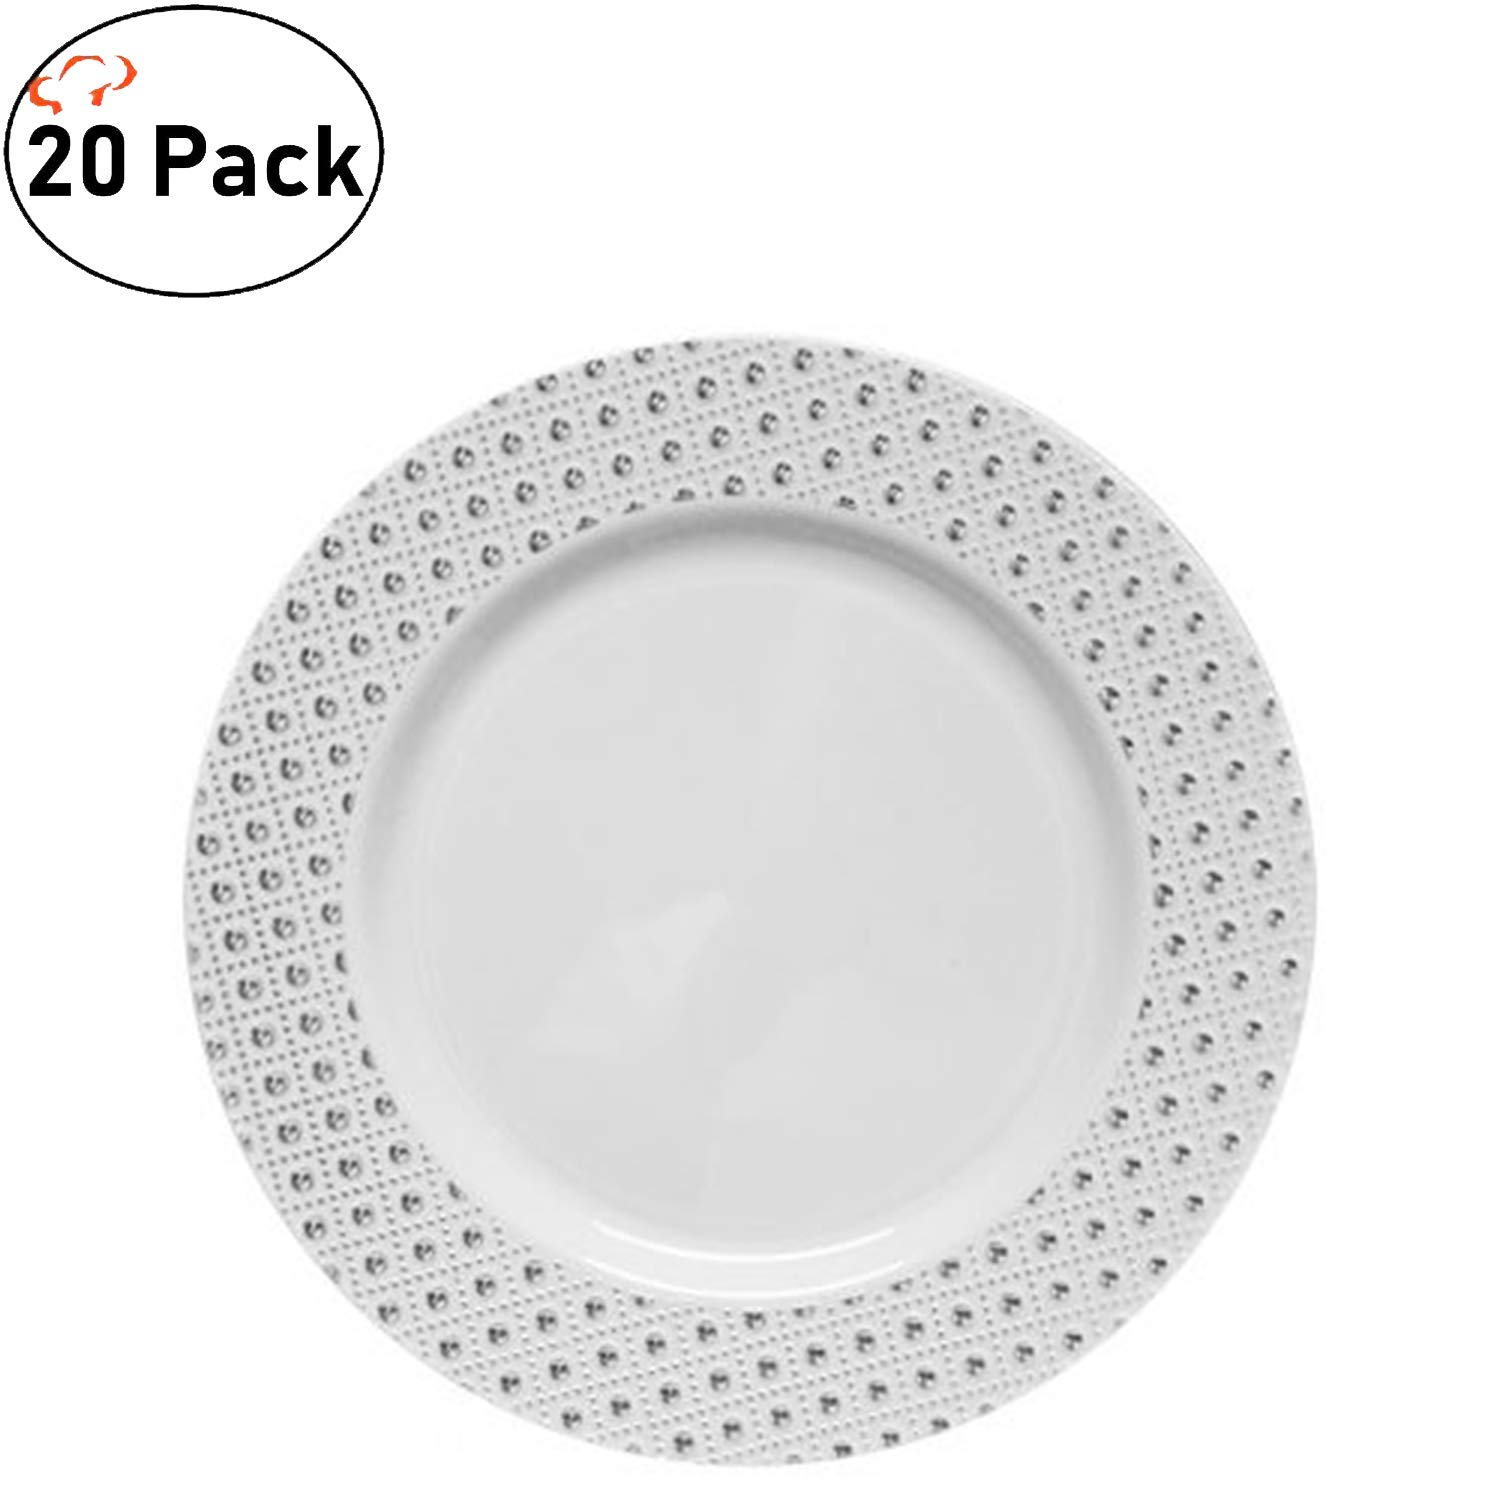 TigerChef 10.25 Inch Silver Heavy Duty Plastic Burst Collection Designed Dinnerware Dinner Plates Pack Of 20 (10.25'' Plates, Silver)